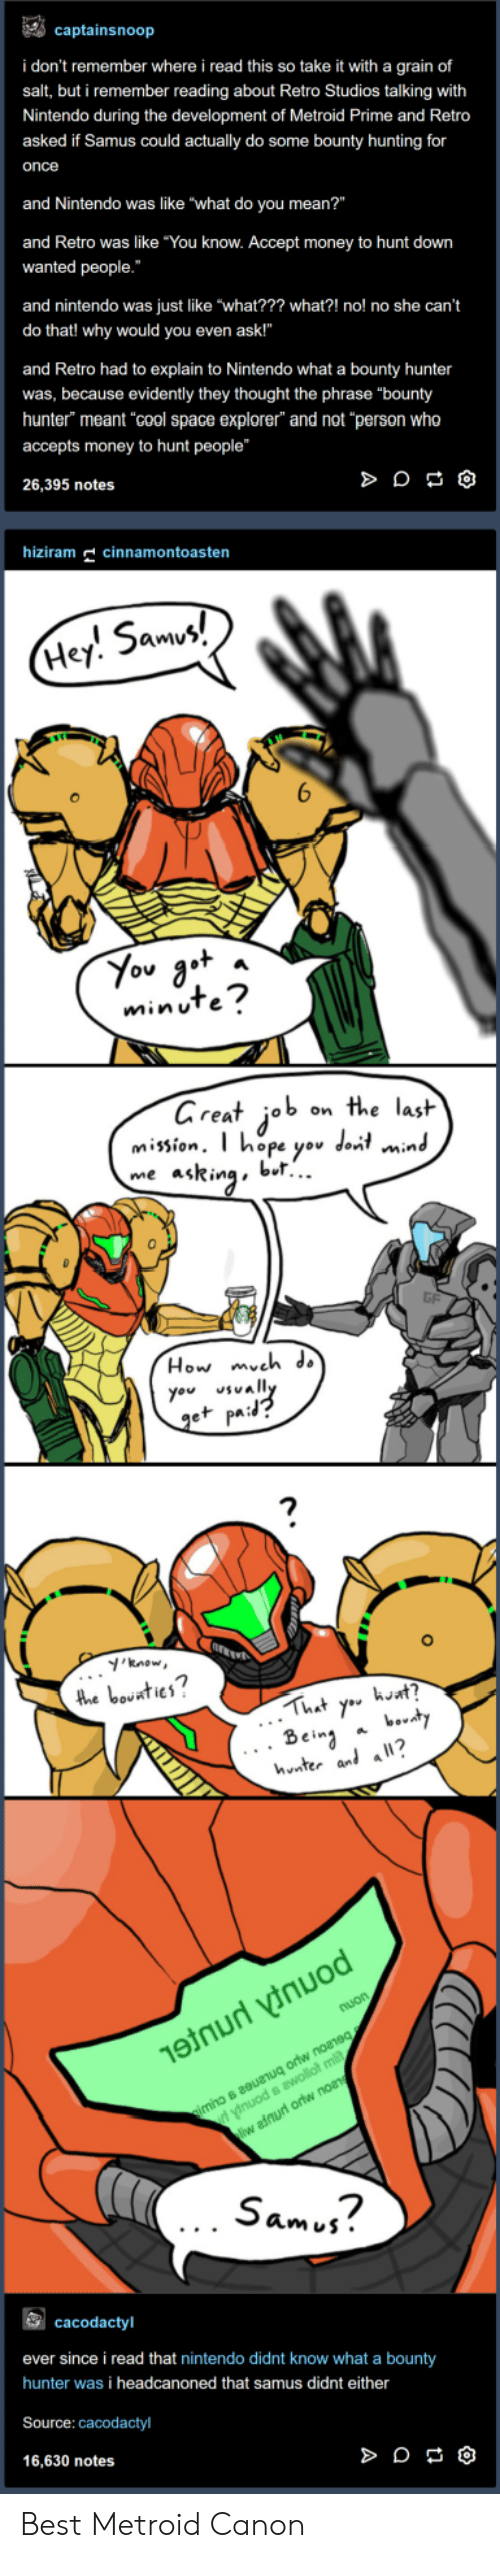 """Money, Nintendo, and Metroid: captainsnoop  i don't remember where i read this so take it with a grain of  salt, but i remember reading about Retro Studios talking with  Nintendo during the development of Metroid Prime and Retro  asked if Samus could actually do some bounty hunting for  once  and Nintendo was like """"what do you mean?""""  and Retro was like """"You know. Accept money to hunt down  wanted people.  and nintendo was just like """"what??? what?! no! no she can't  do that! why would you even ask!""""  and Retro had to explain to Nintendo what a bounty hunter  was, because evidently they thought the phrase """"bounty  hunter"""" meant cool space explorer"""" and not """"person who  accepts money to hunt people""""  26,395 notes  hizm cinnamontoasten  5am  Hey. Smv  minuTe  areat job on the lasit  mission. T hope yov dont min  me asRinabl..  0  How mveh ds  you vally  e+ pa:  'know  2  hnter al a?  Sam j?  cacodactyl  ever since i read that nintendo didnt know what a bounty  hunter was i headcanoned that samus didnt either  Source: cacodactyl  16,630 notes Best Metroid Canon"""